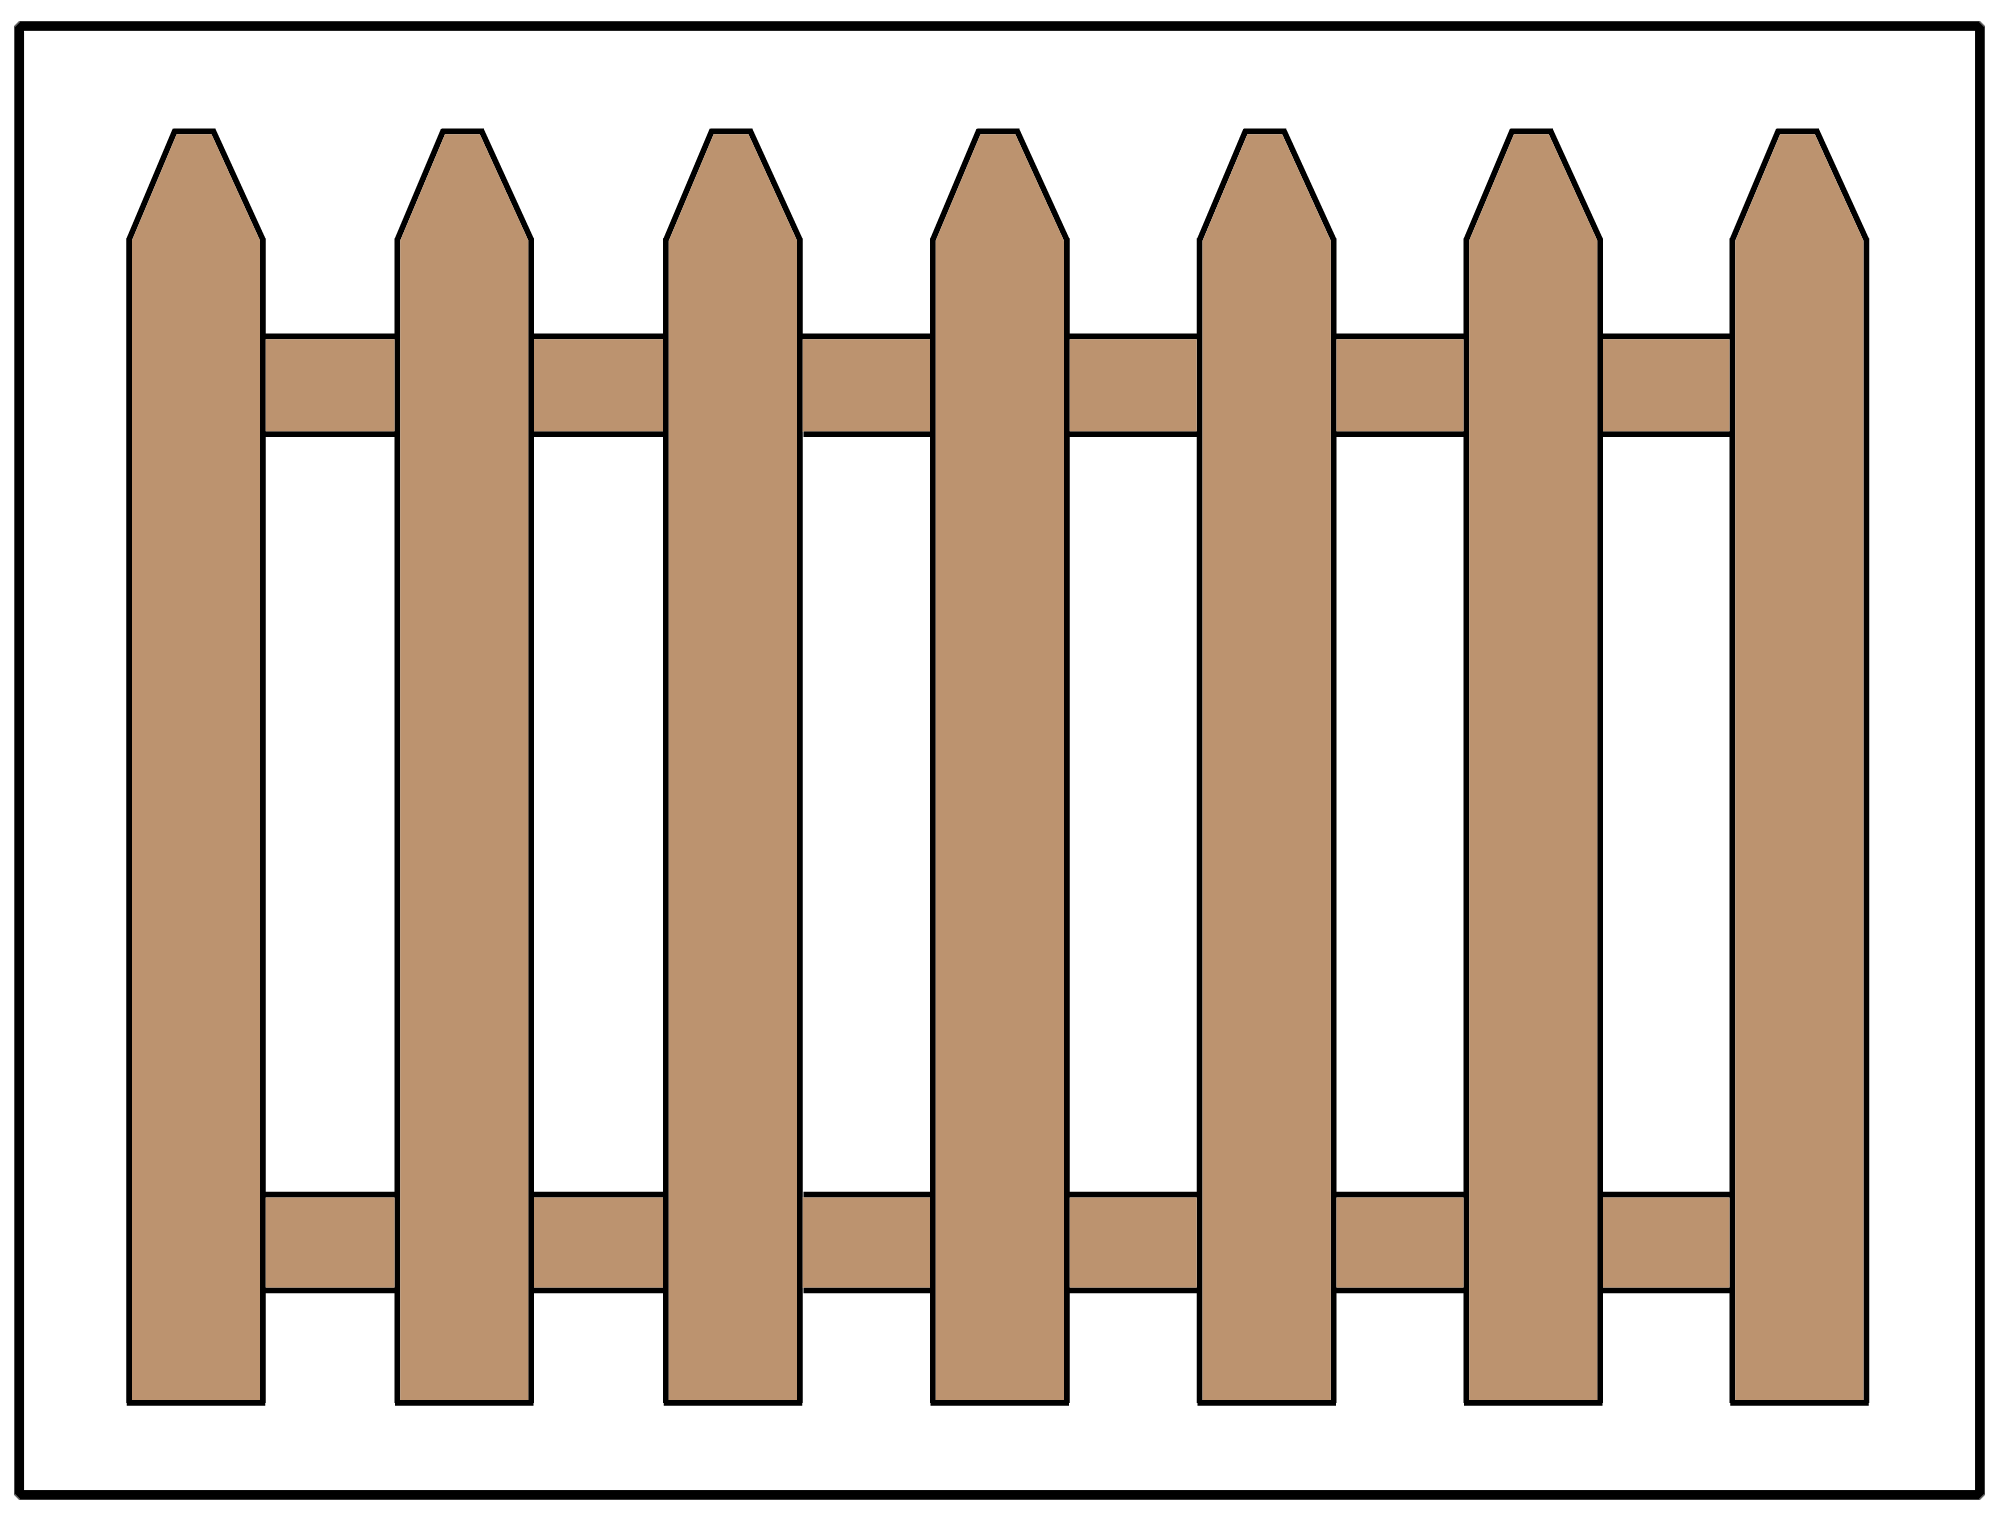 Picket fence design using angled pickets